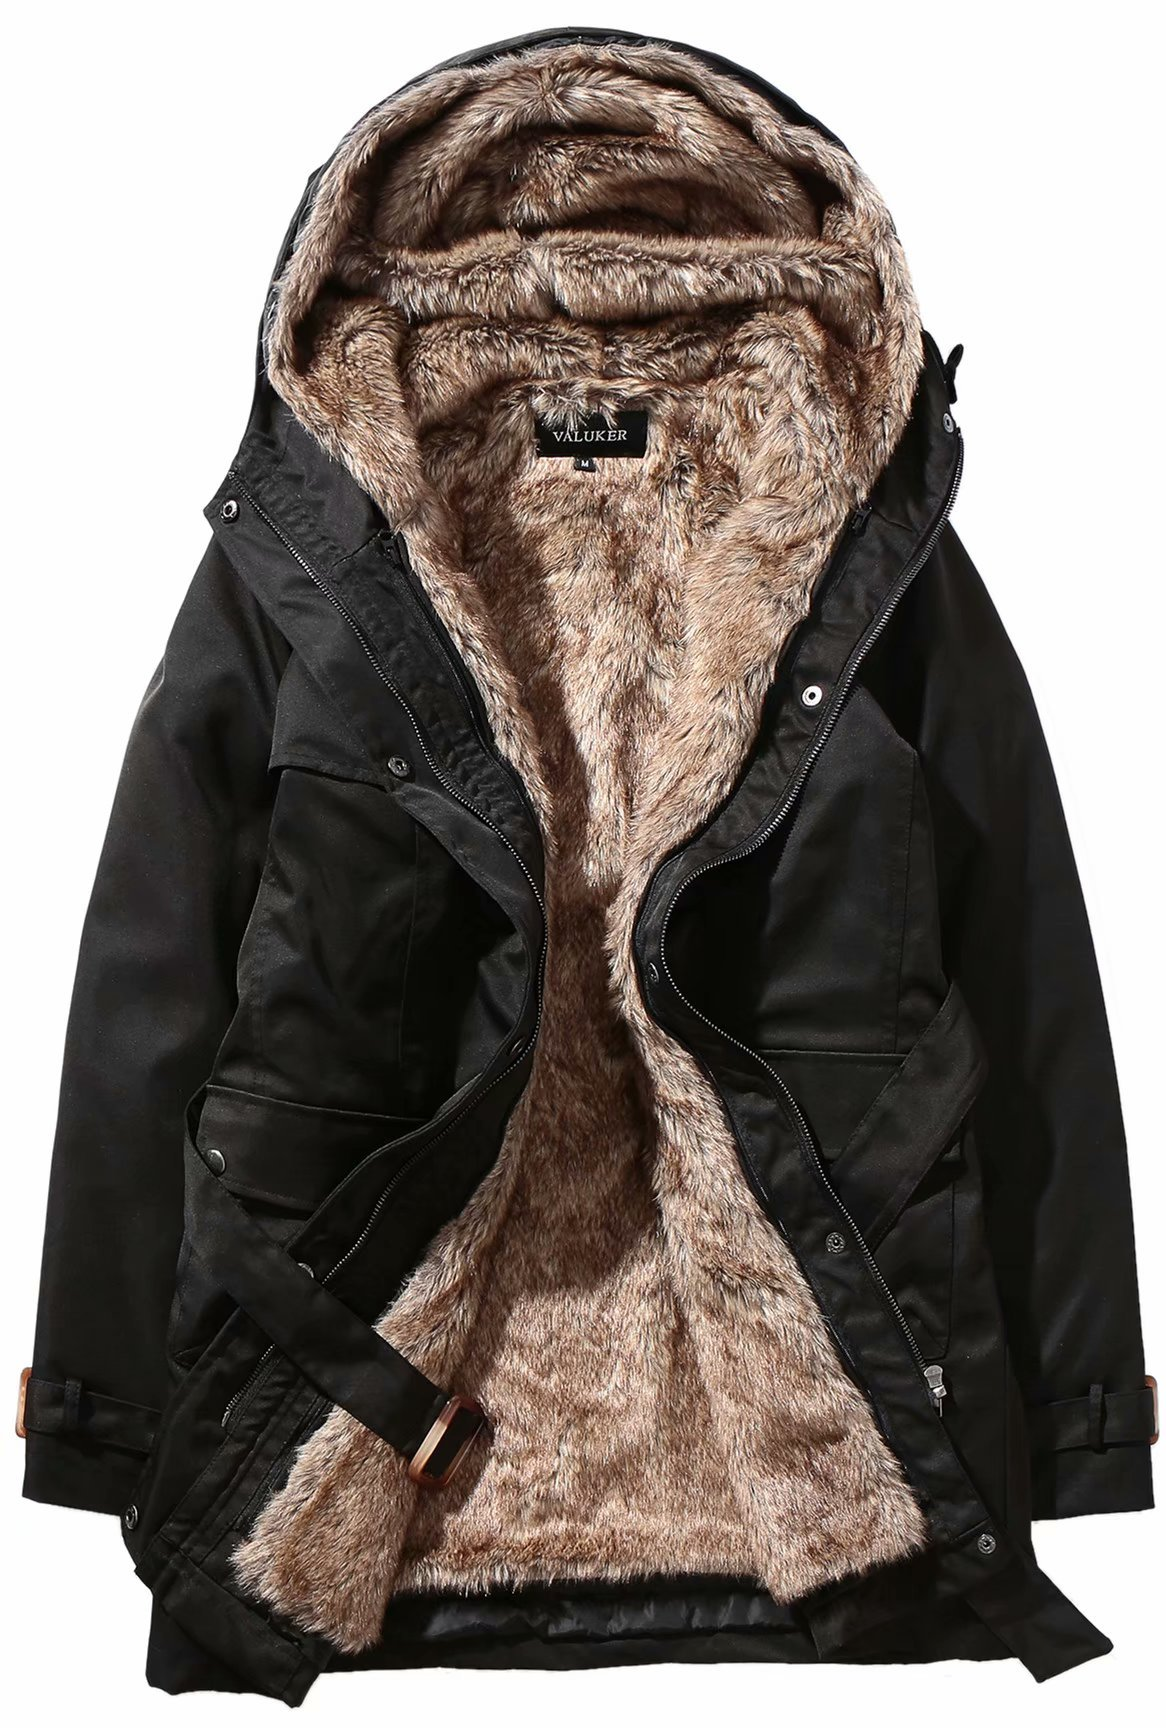 Valuker Women's3 Season Trench Coat with Detachable Fur Lined Hooded Parka 405-Black-XL by Beinia